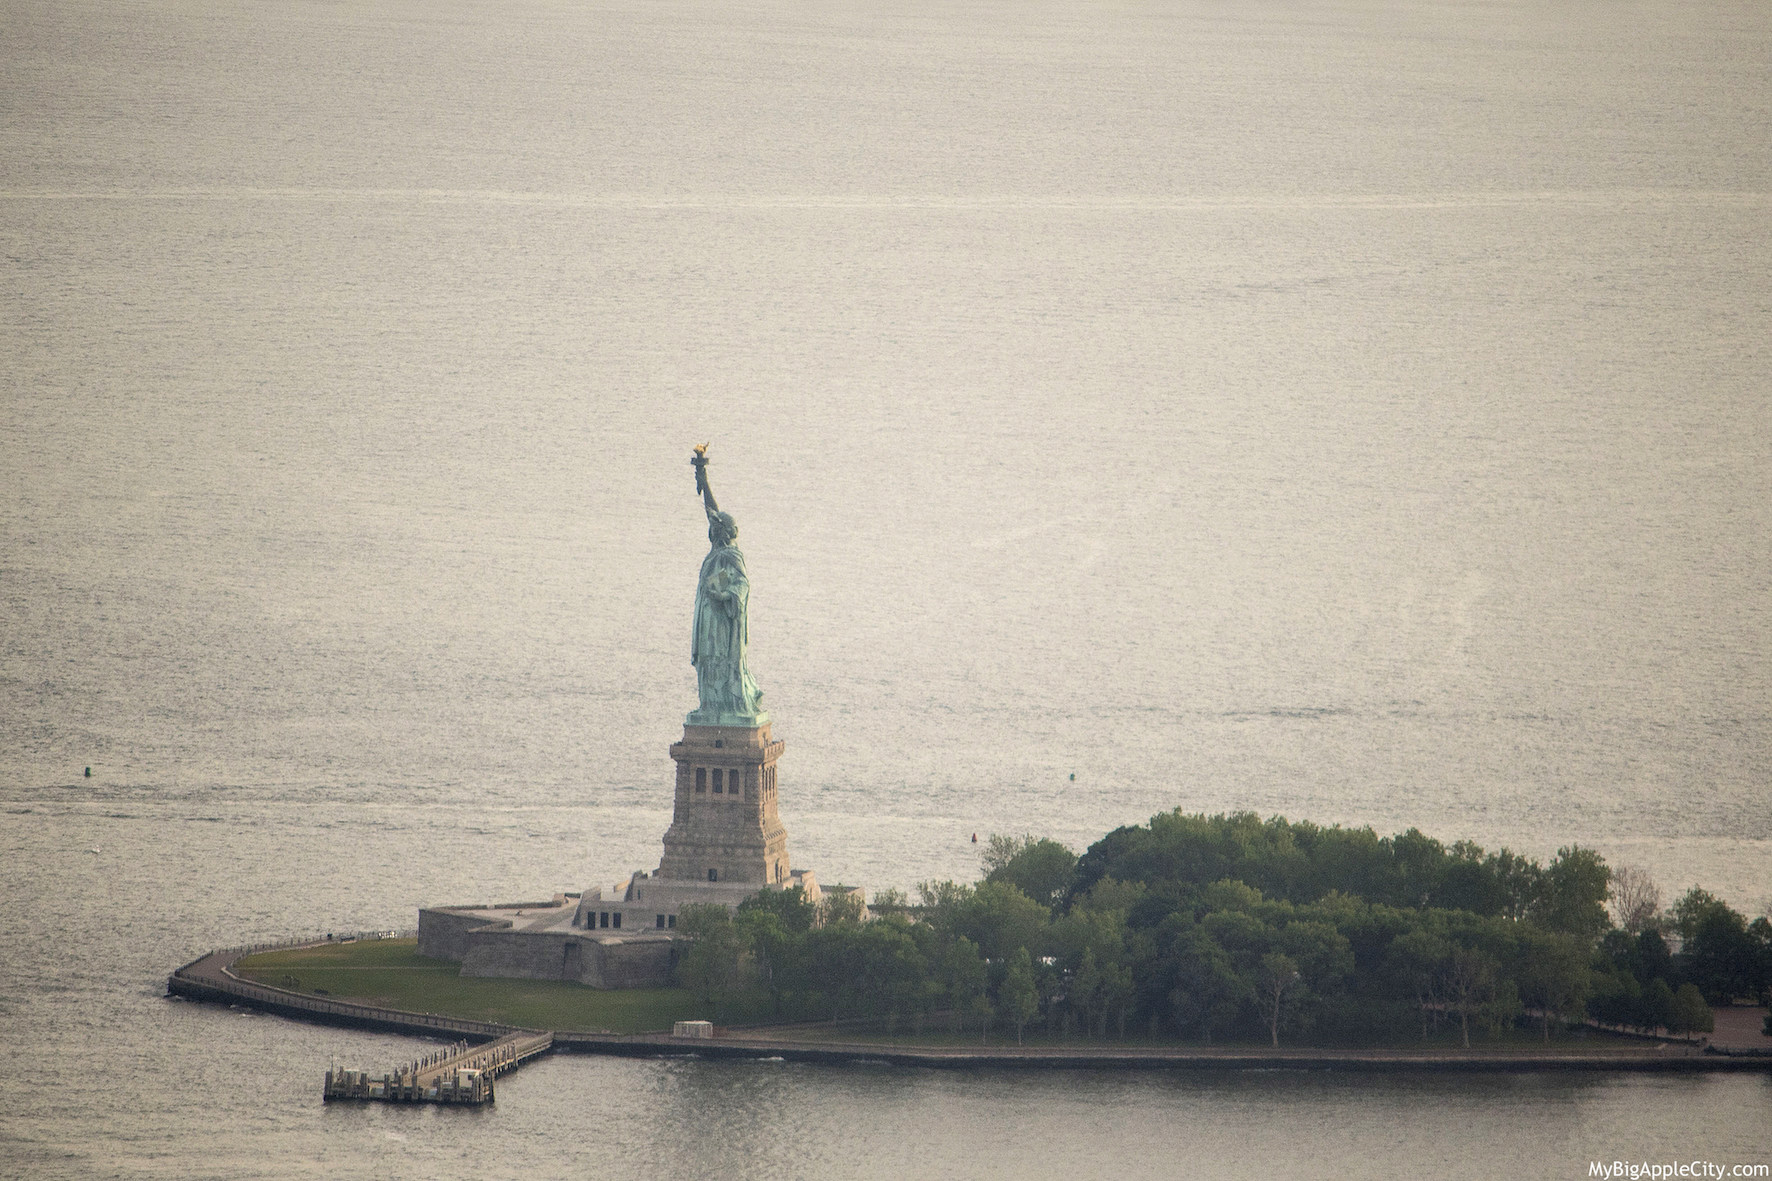 Liberty-Island-One-WTC-visit-New-York-MyBigAppleCity